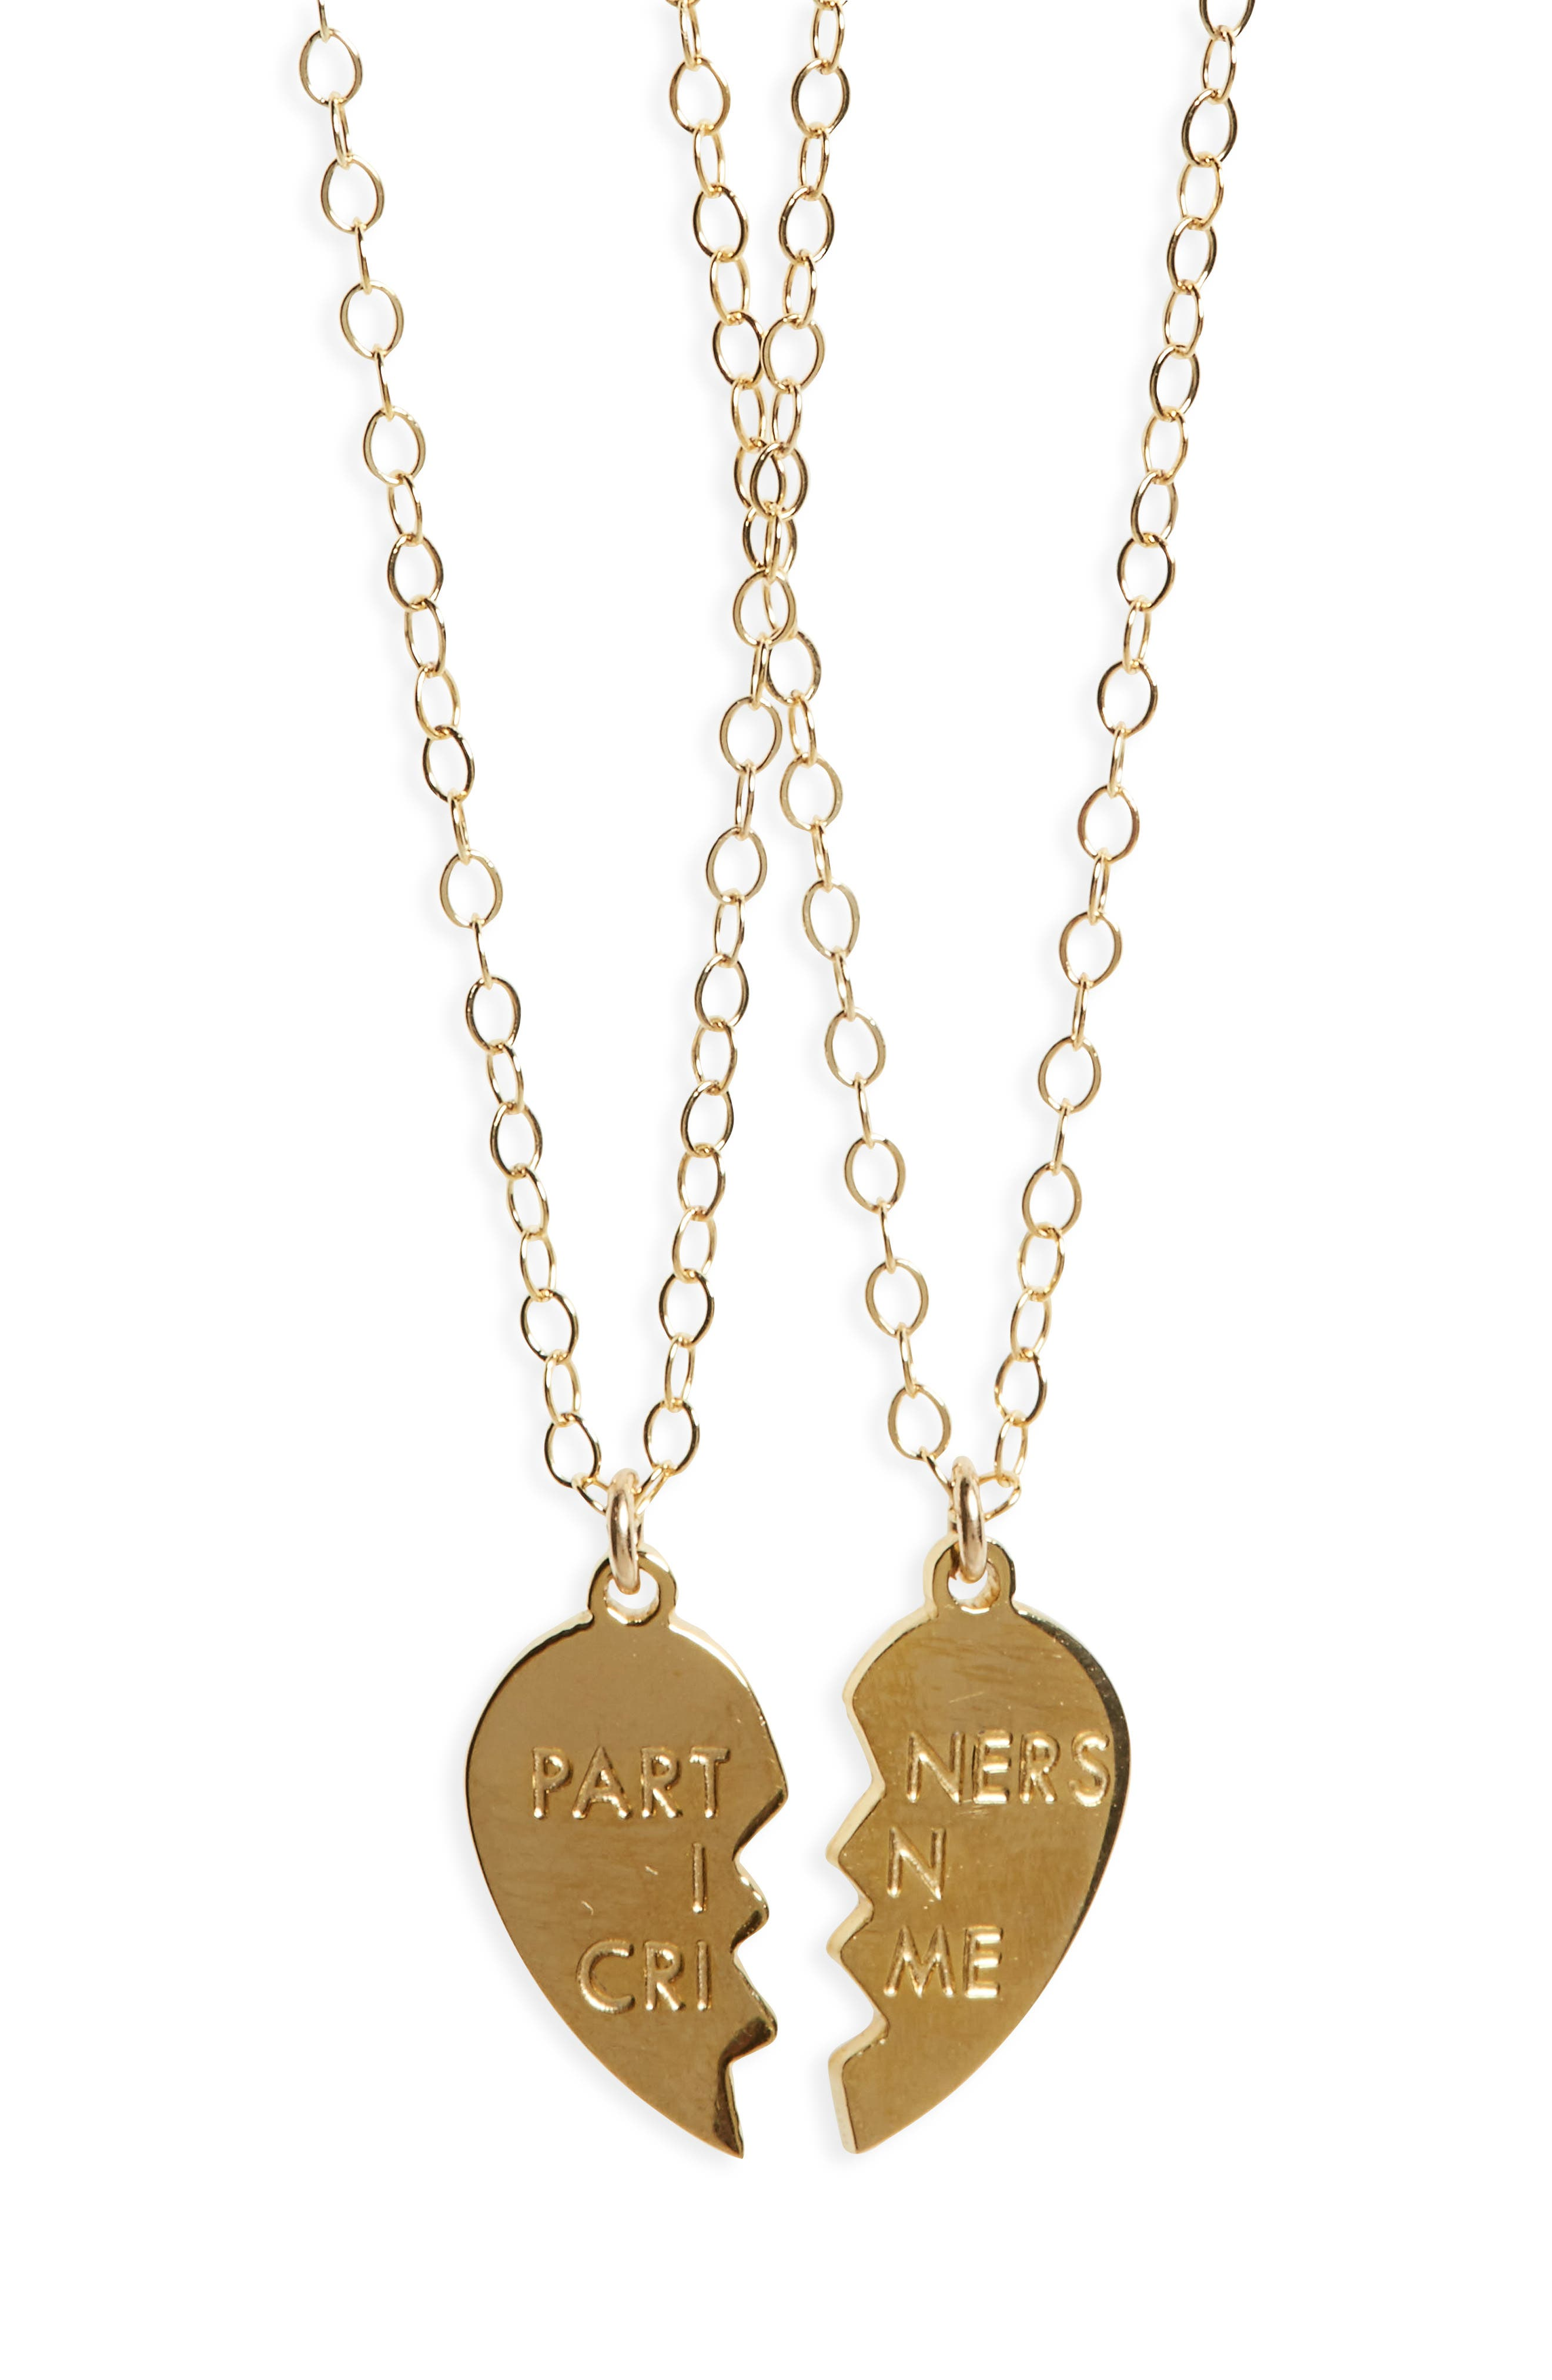 Main Image - Seoul Little Partners In Crime Necklace Set